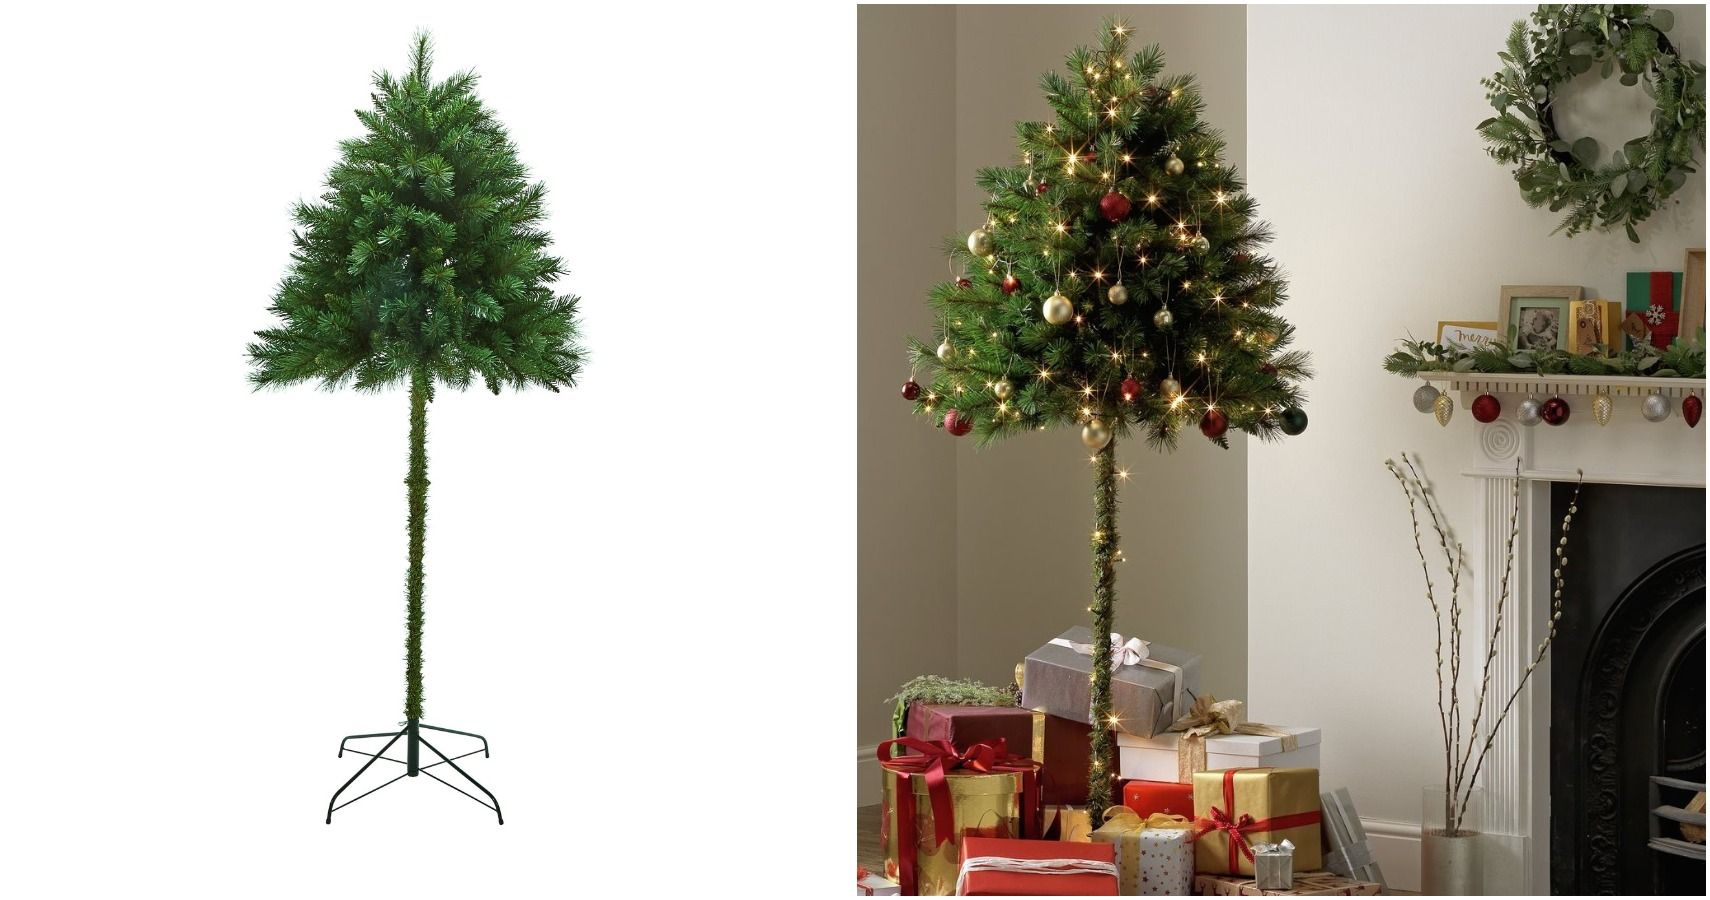 Argos' 'Half Christmas Trees' Are Perfect For Anyone With